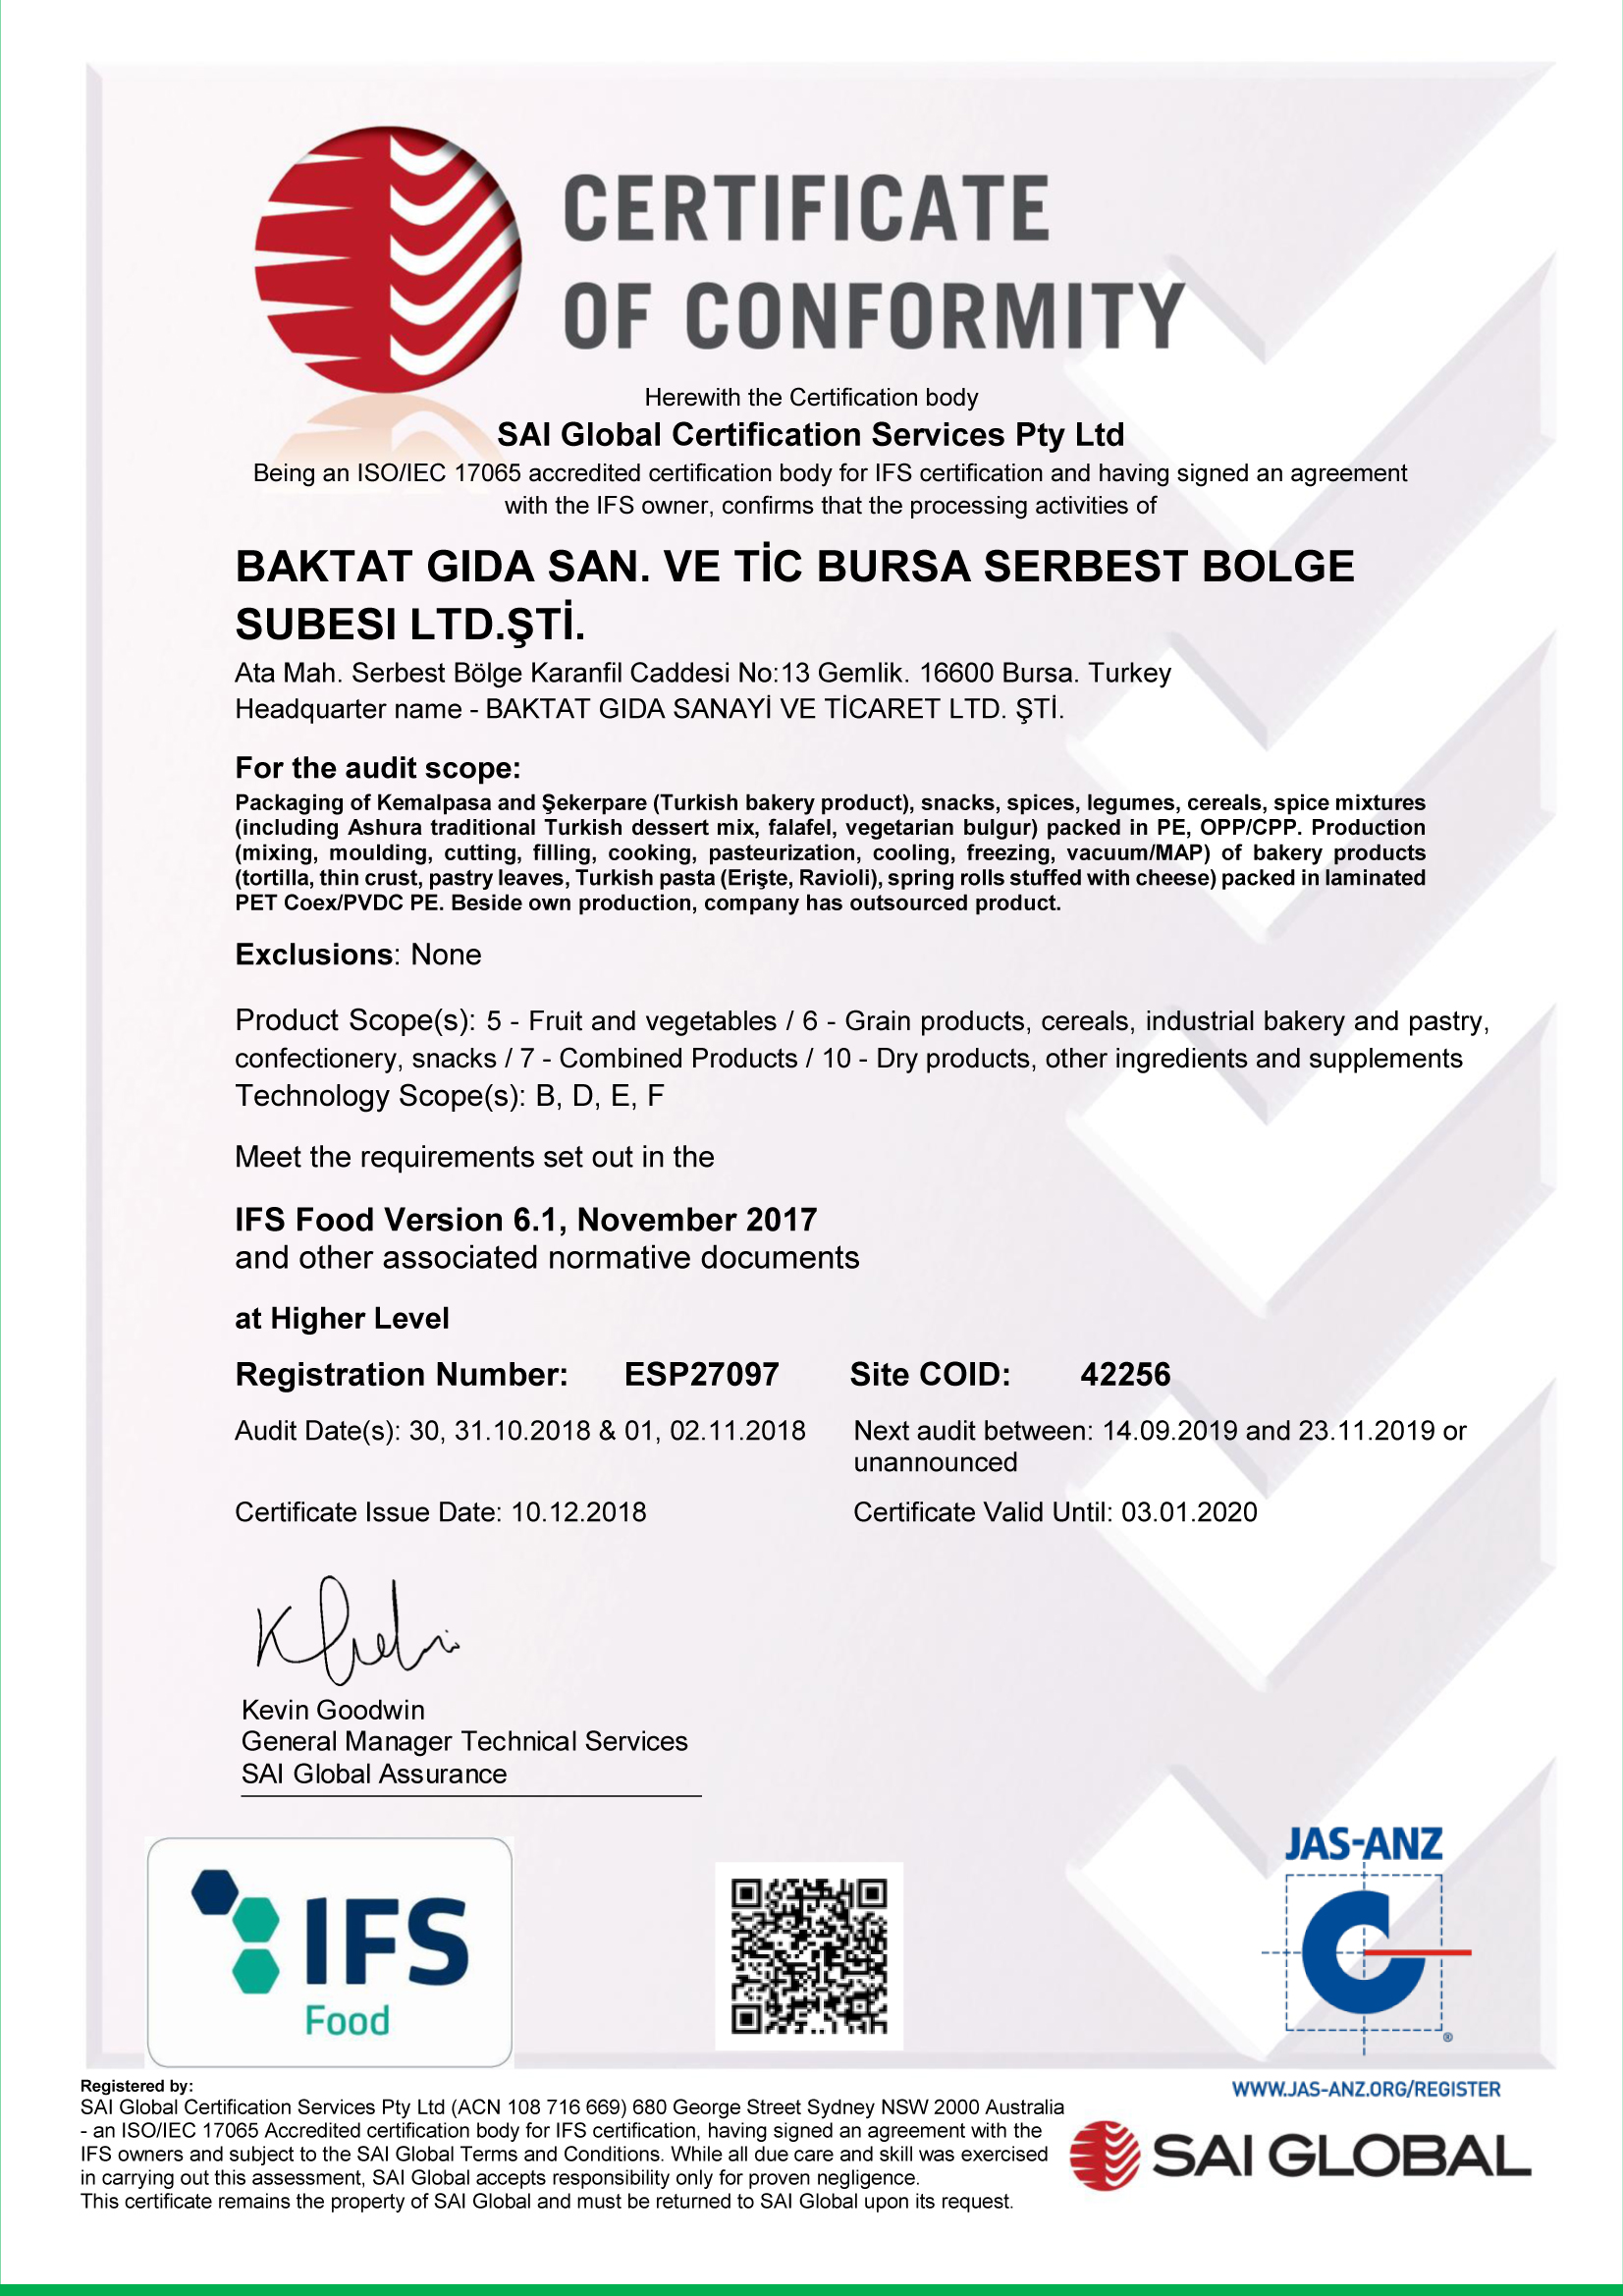 CERTIFICATE OF CONFORMITY, SAI Global Certification Services Pty Ltd